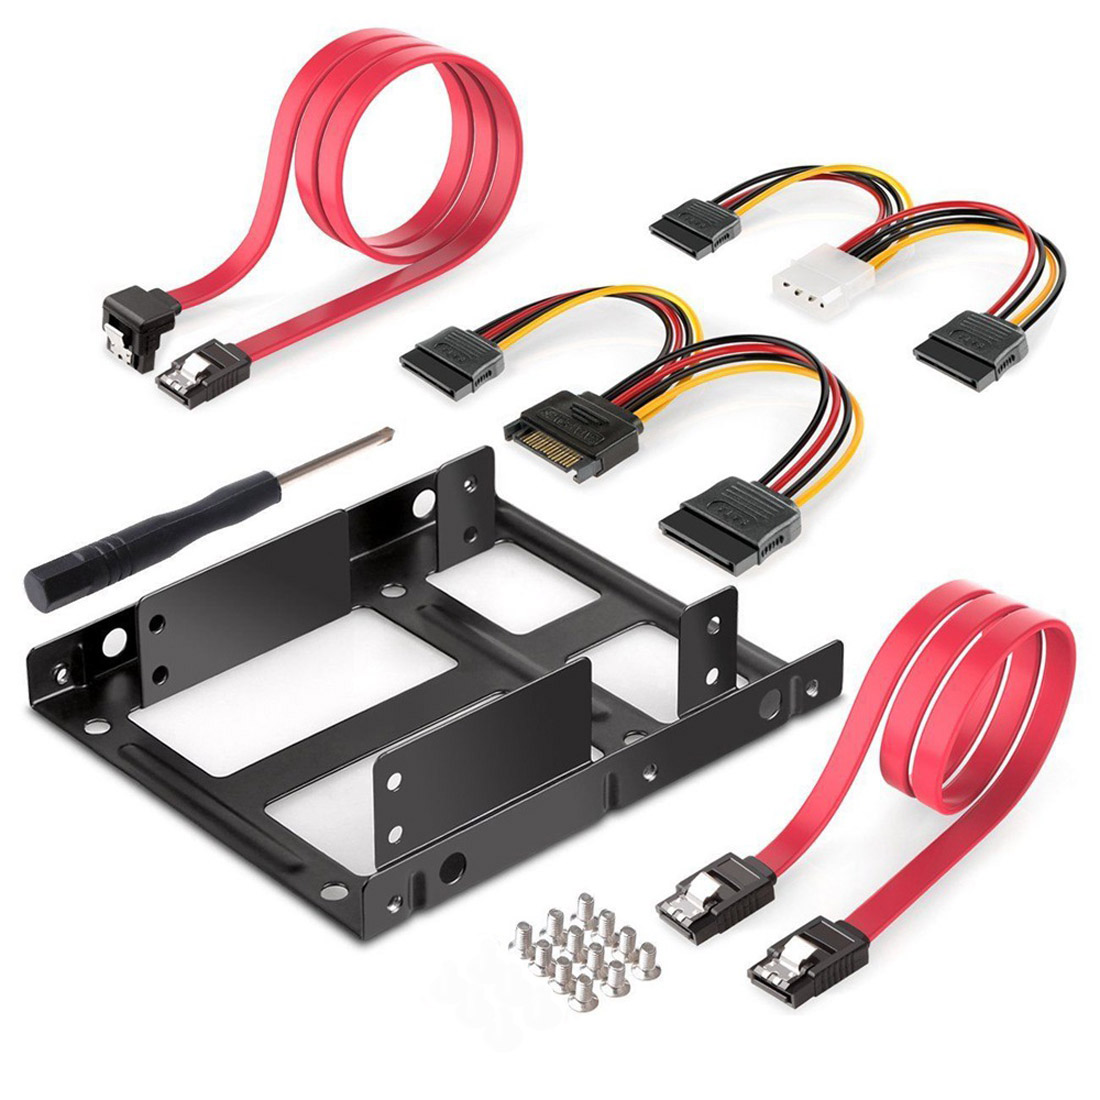 2-Bay 2.5 Inch to <font><b>3.5</b></font> Inch External HDD <font><b>SSD</b></font> Metal Mounting Kit Adapter Bracket With <font><b>SATA</b></font> Data Power Cables & Screws image